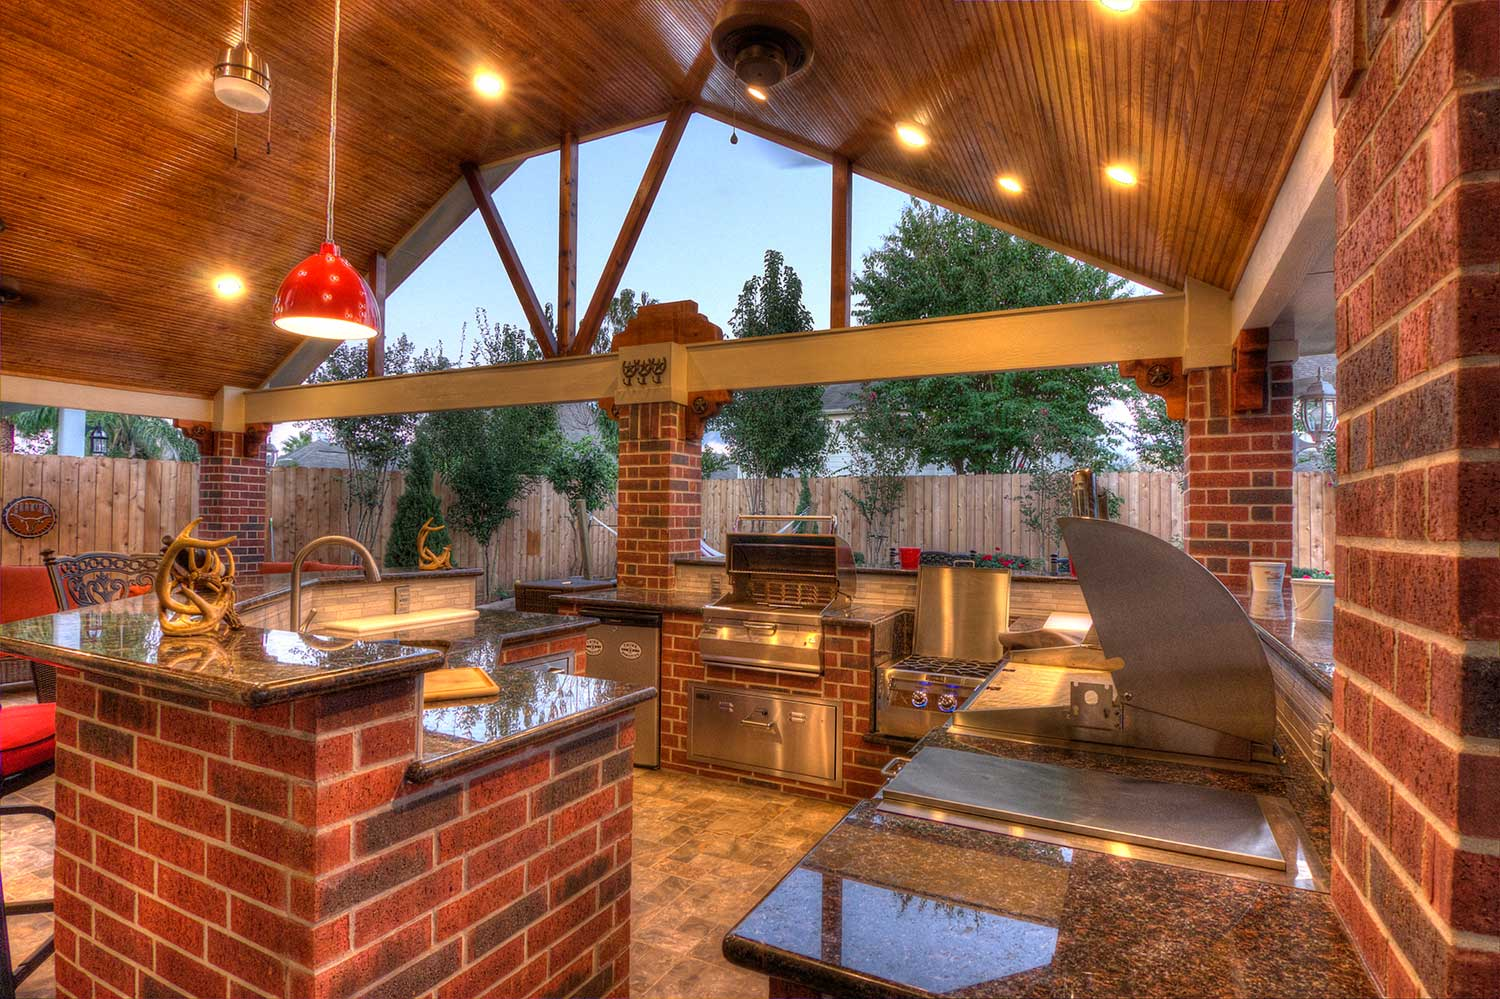 Patio Cover + Outdoor Kitchen - HHI Patio Covers on Outdoor Kitchen Patio id=21385